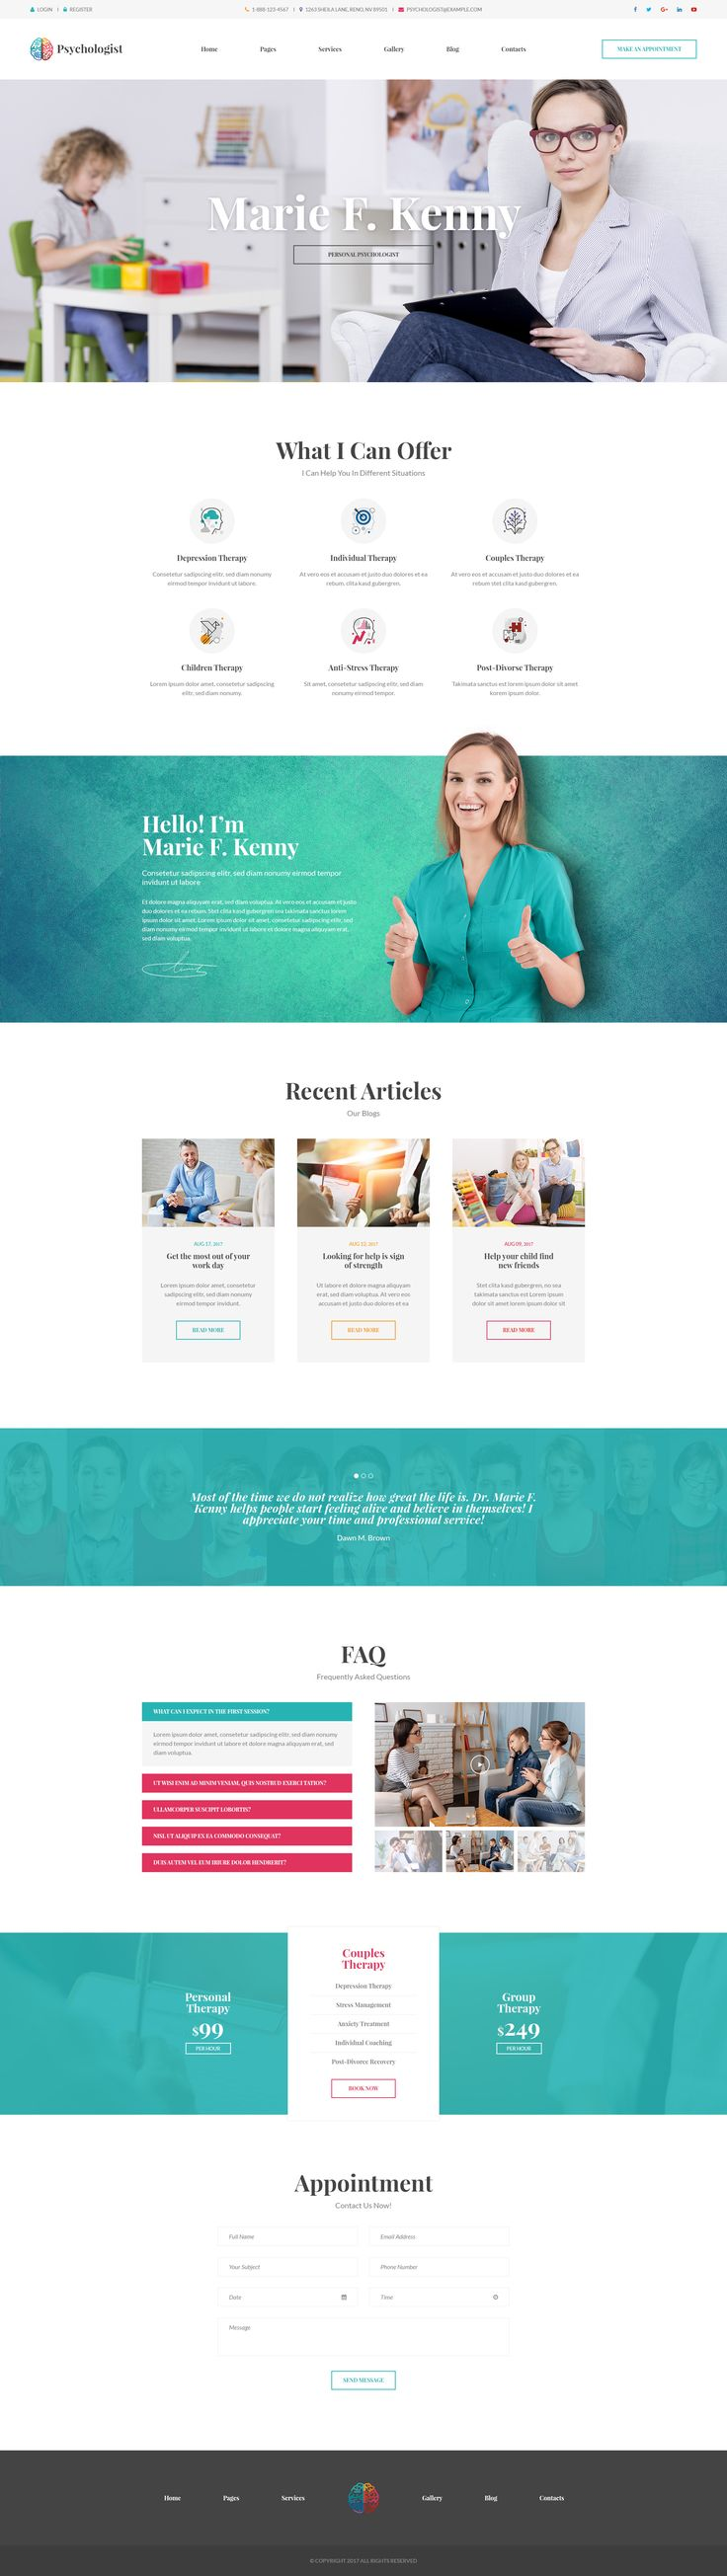 14 best Therapist and Counselor Websites images on Pinterest ...